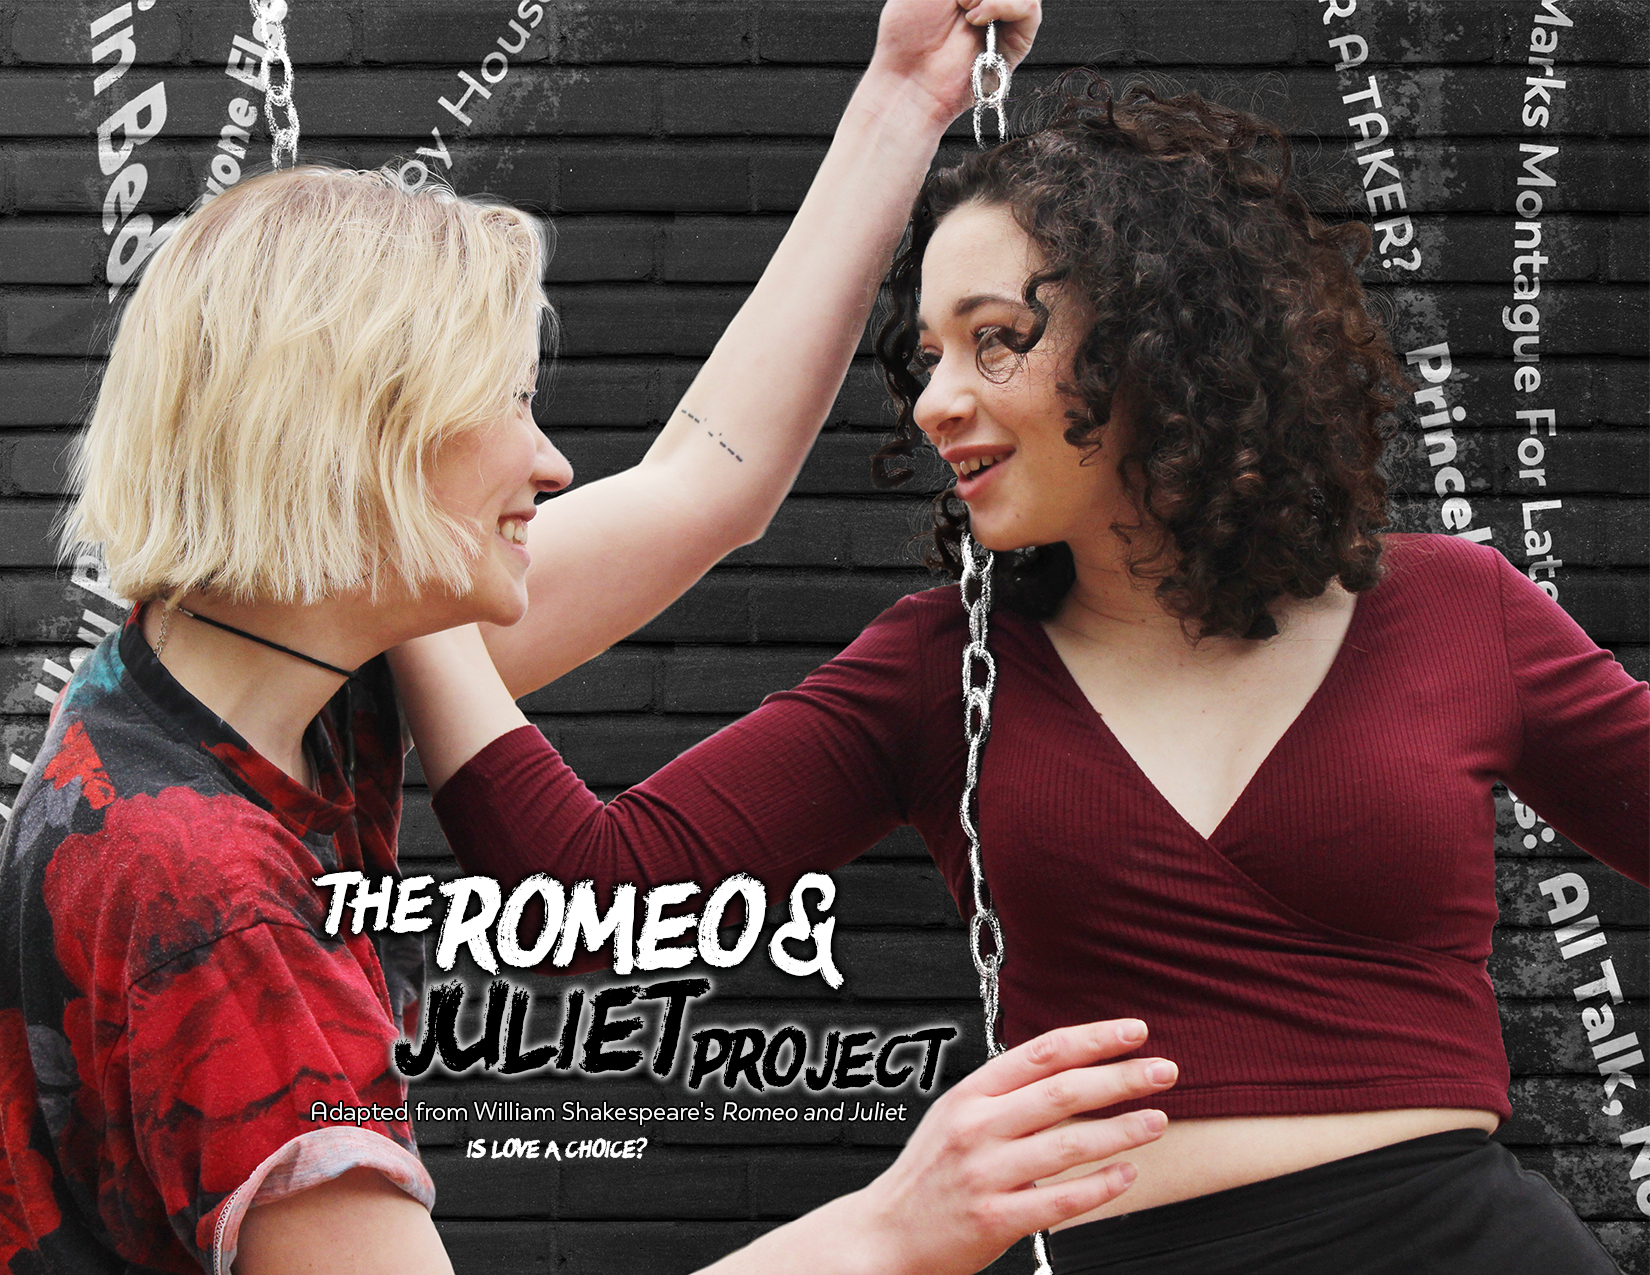 The Romeo & Juliet Project Marketing Suite